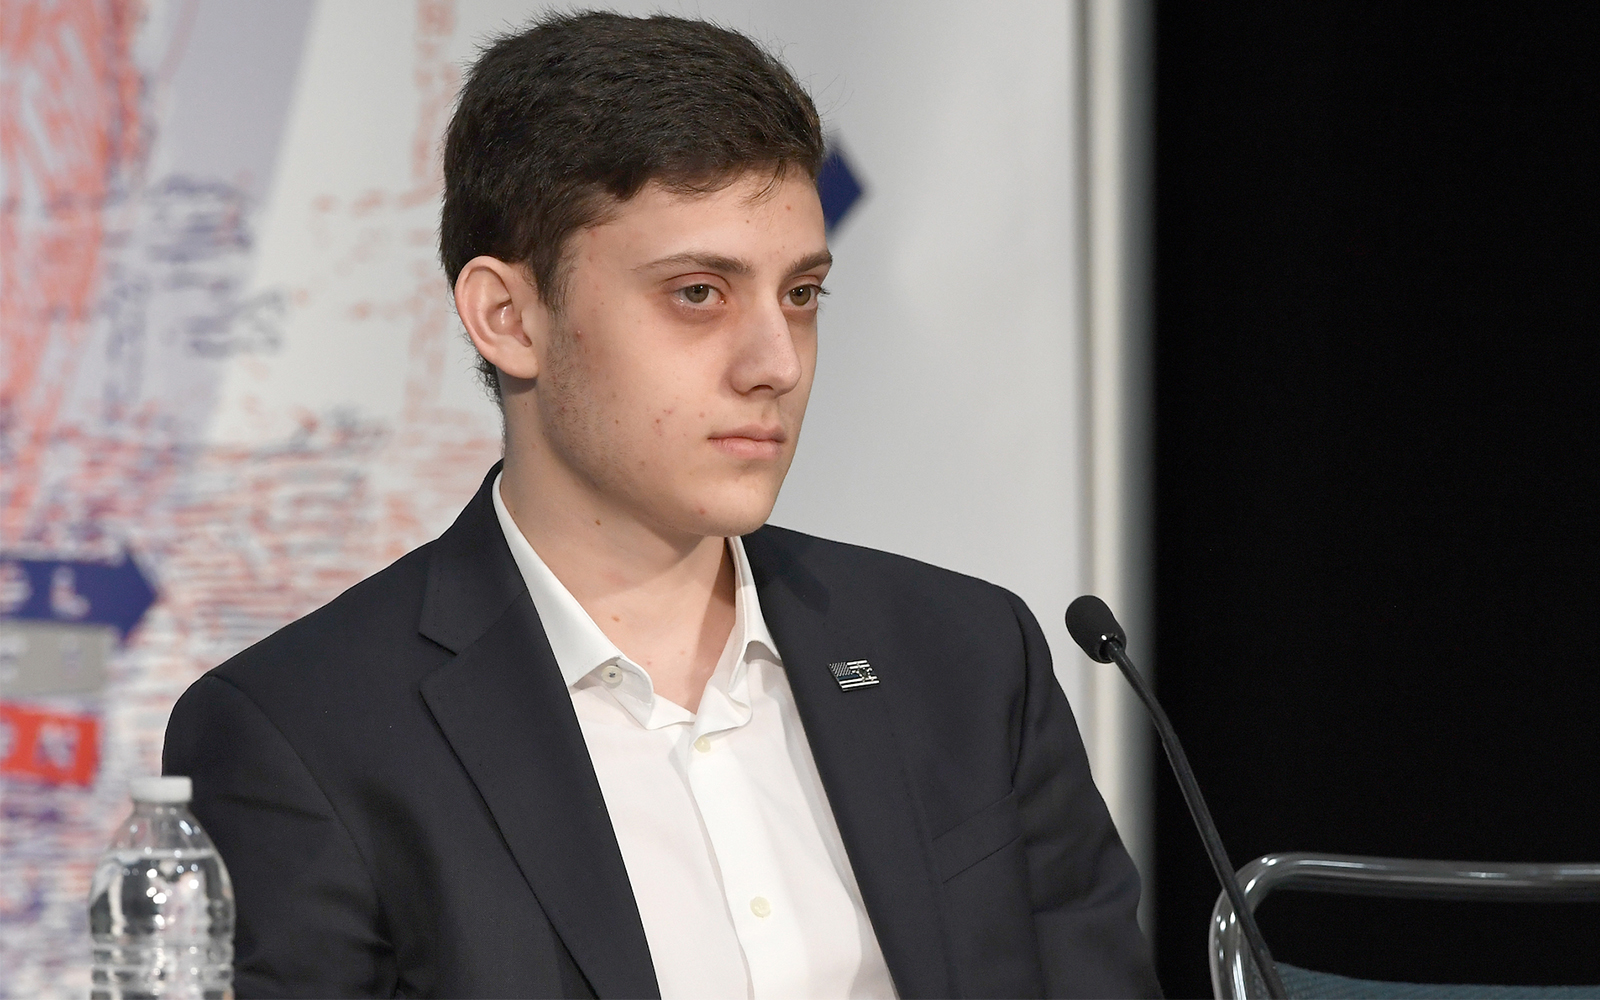 The Kashuv controversy — post haste can make waste